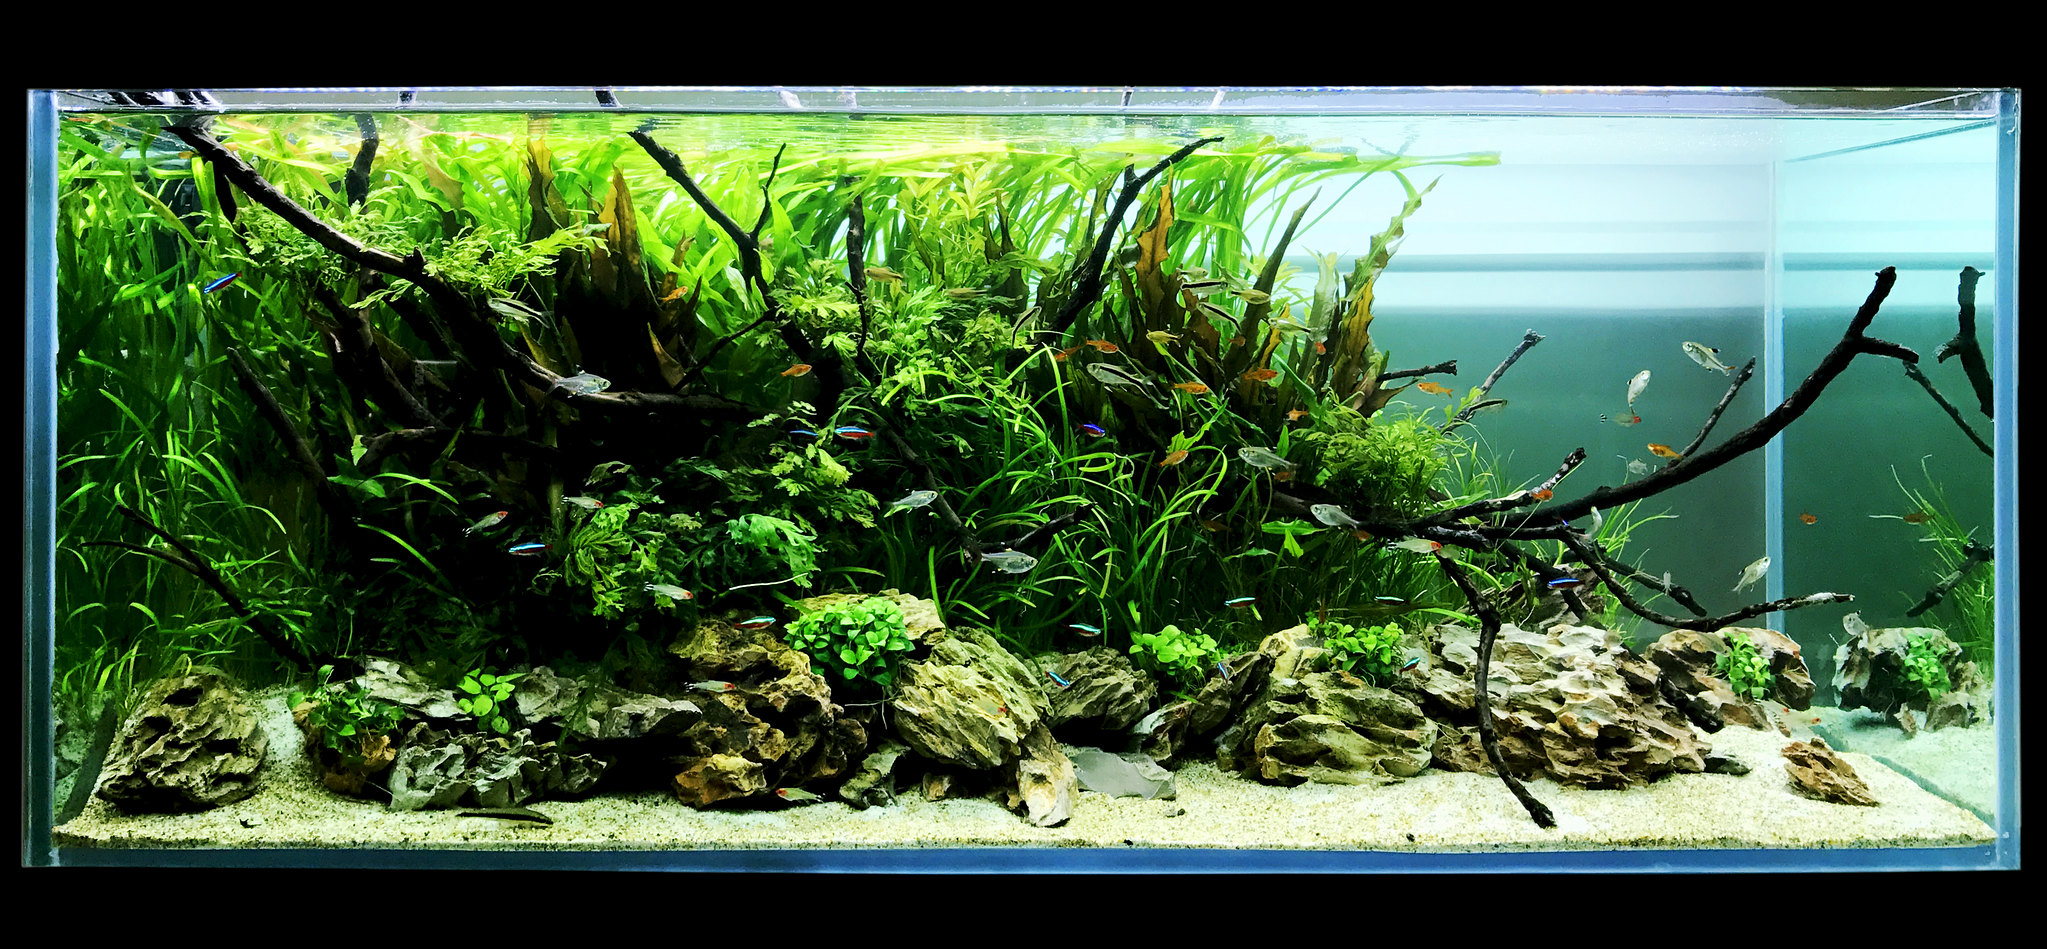 ... To Change The Tank And Make A New Aquascape. I Keept All My Plants But  Grew The Tank To A 120p 120x45x45cm. This Was The Result On Day 4 After  Planting.